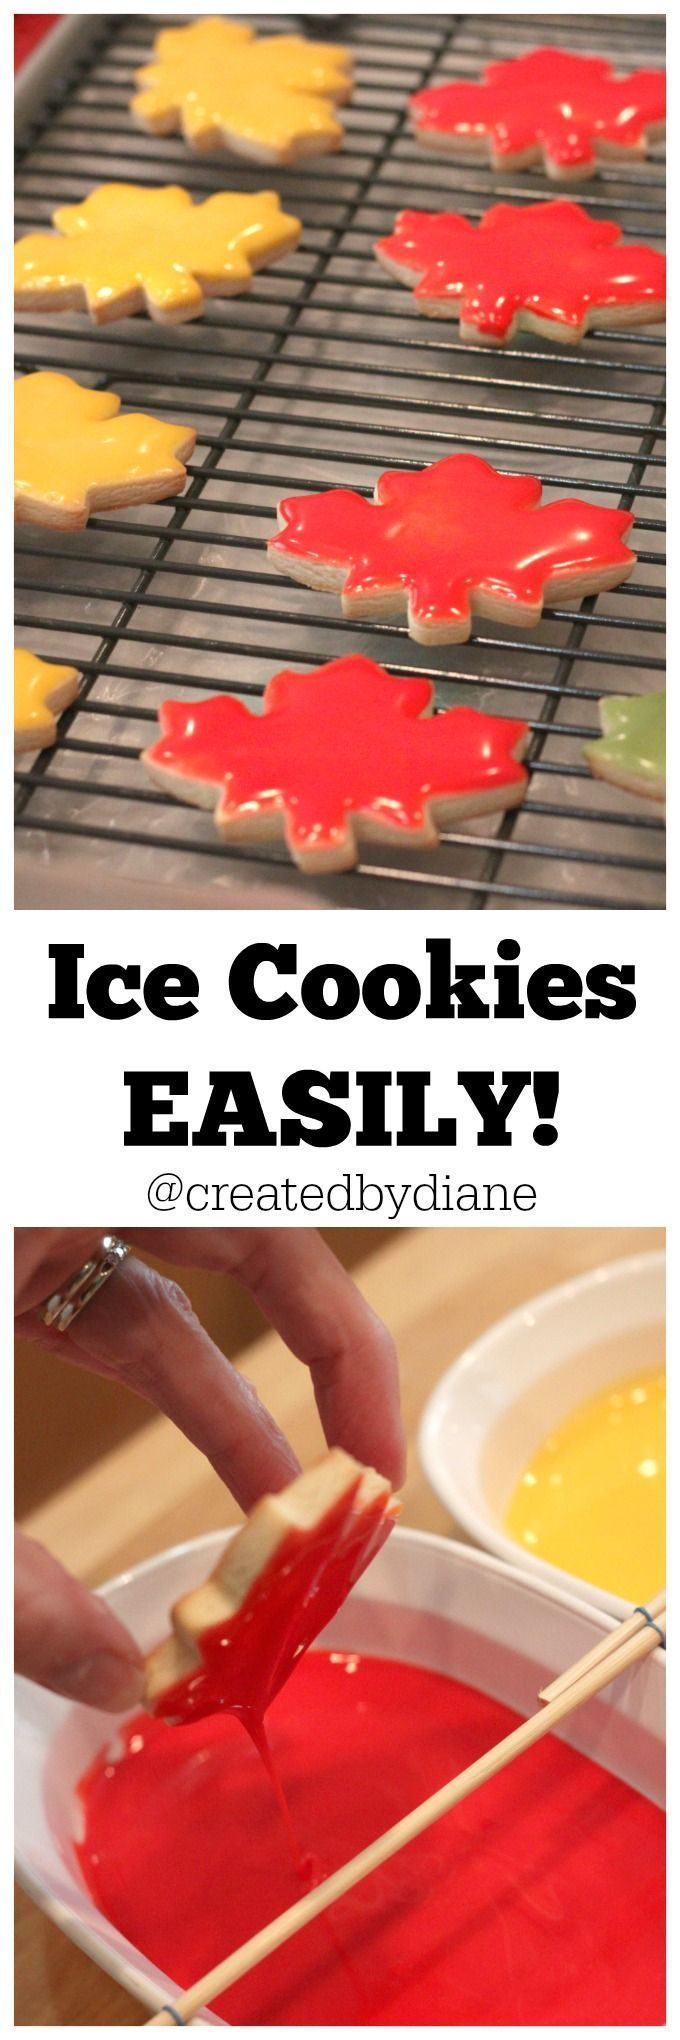 Ice Cookies EASILY /createdbydiane/